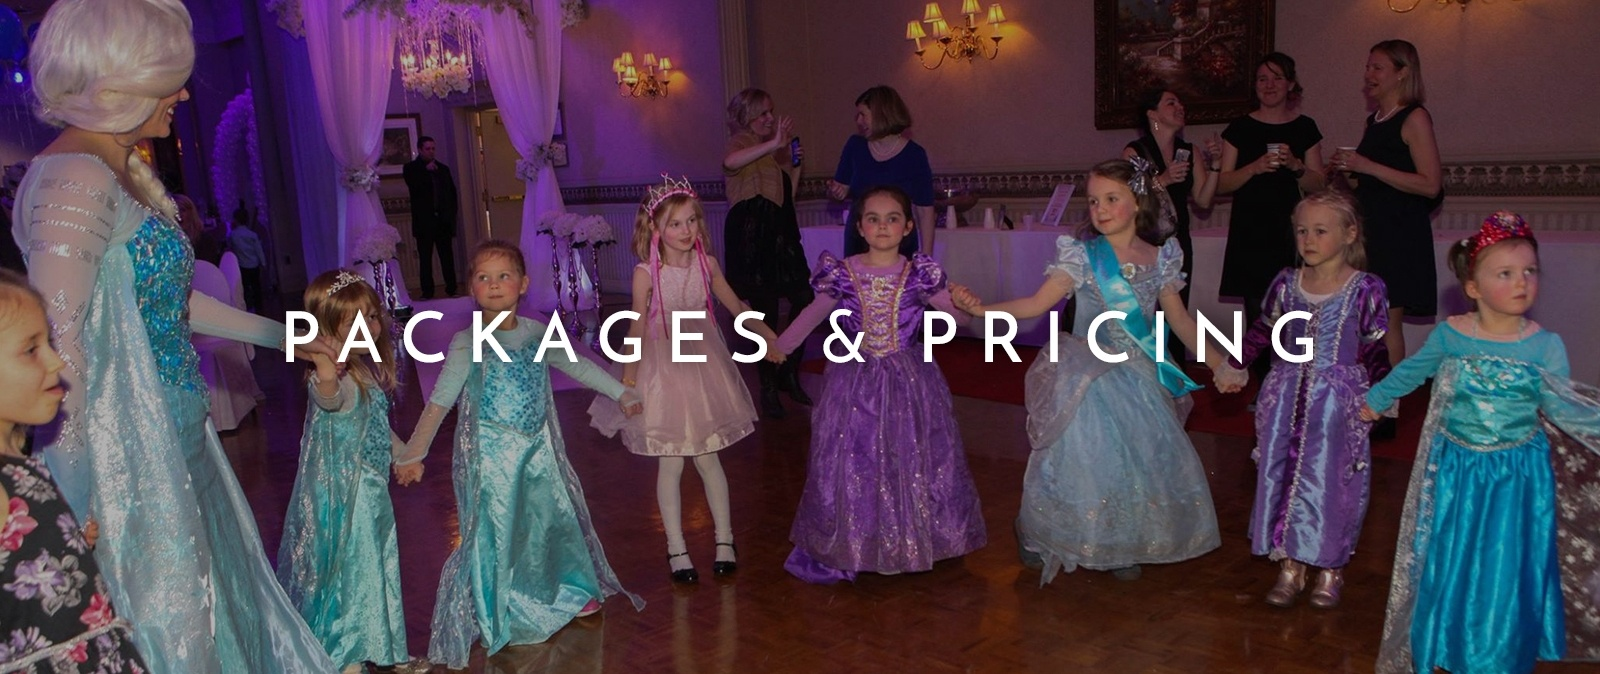 packages pricing toronto milton oshawa